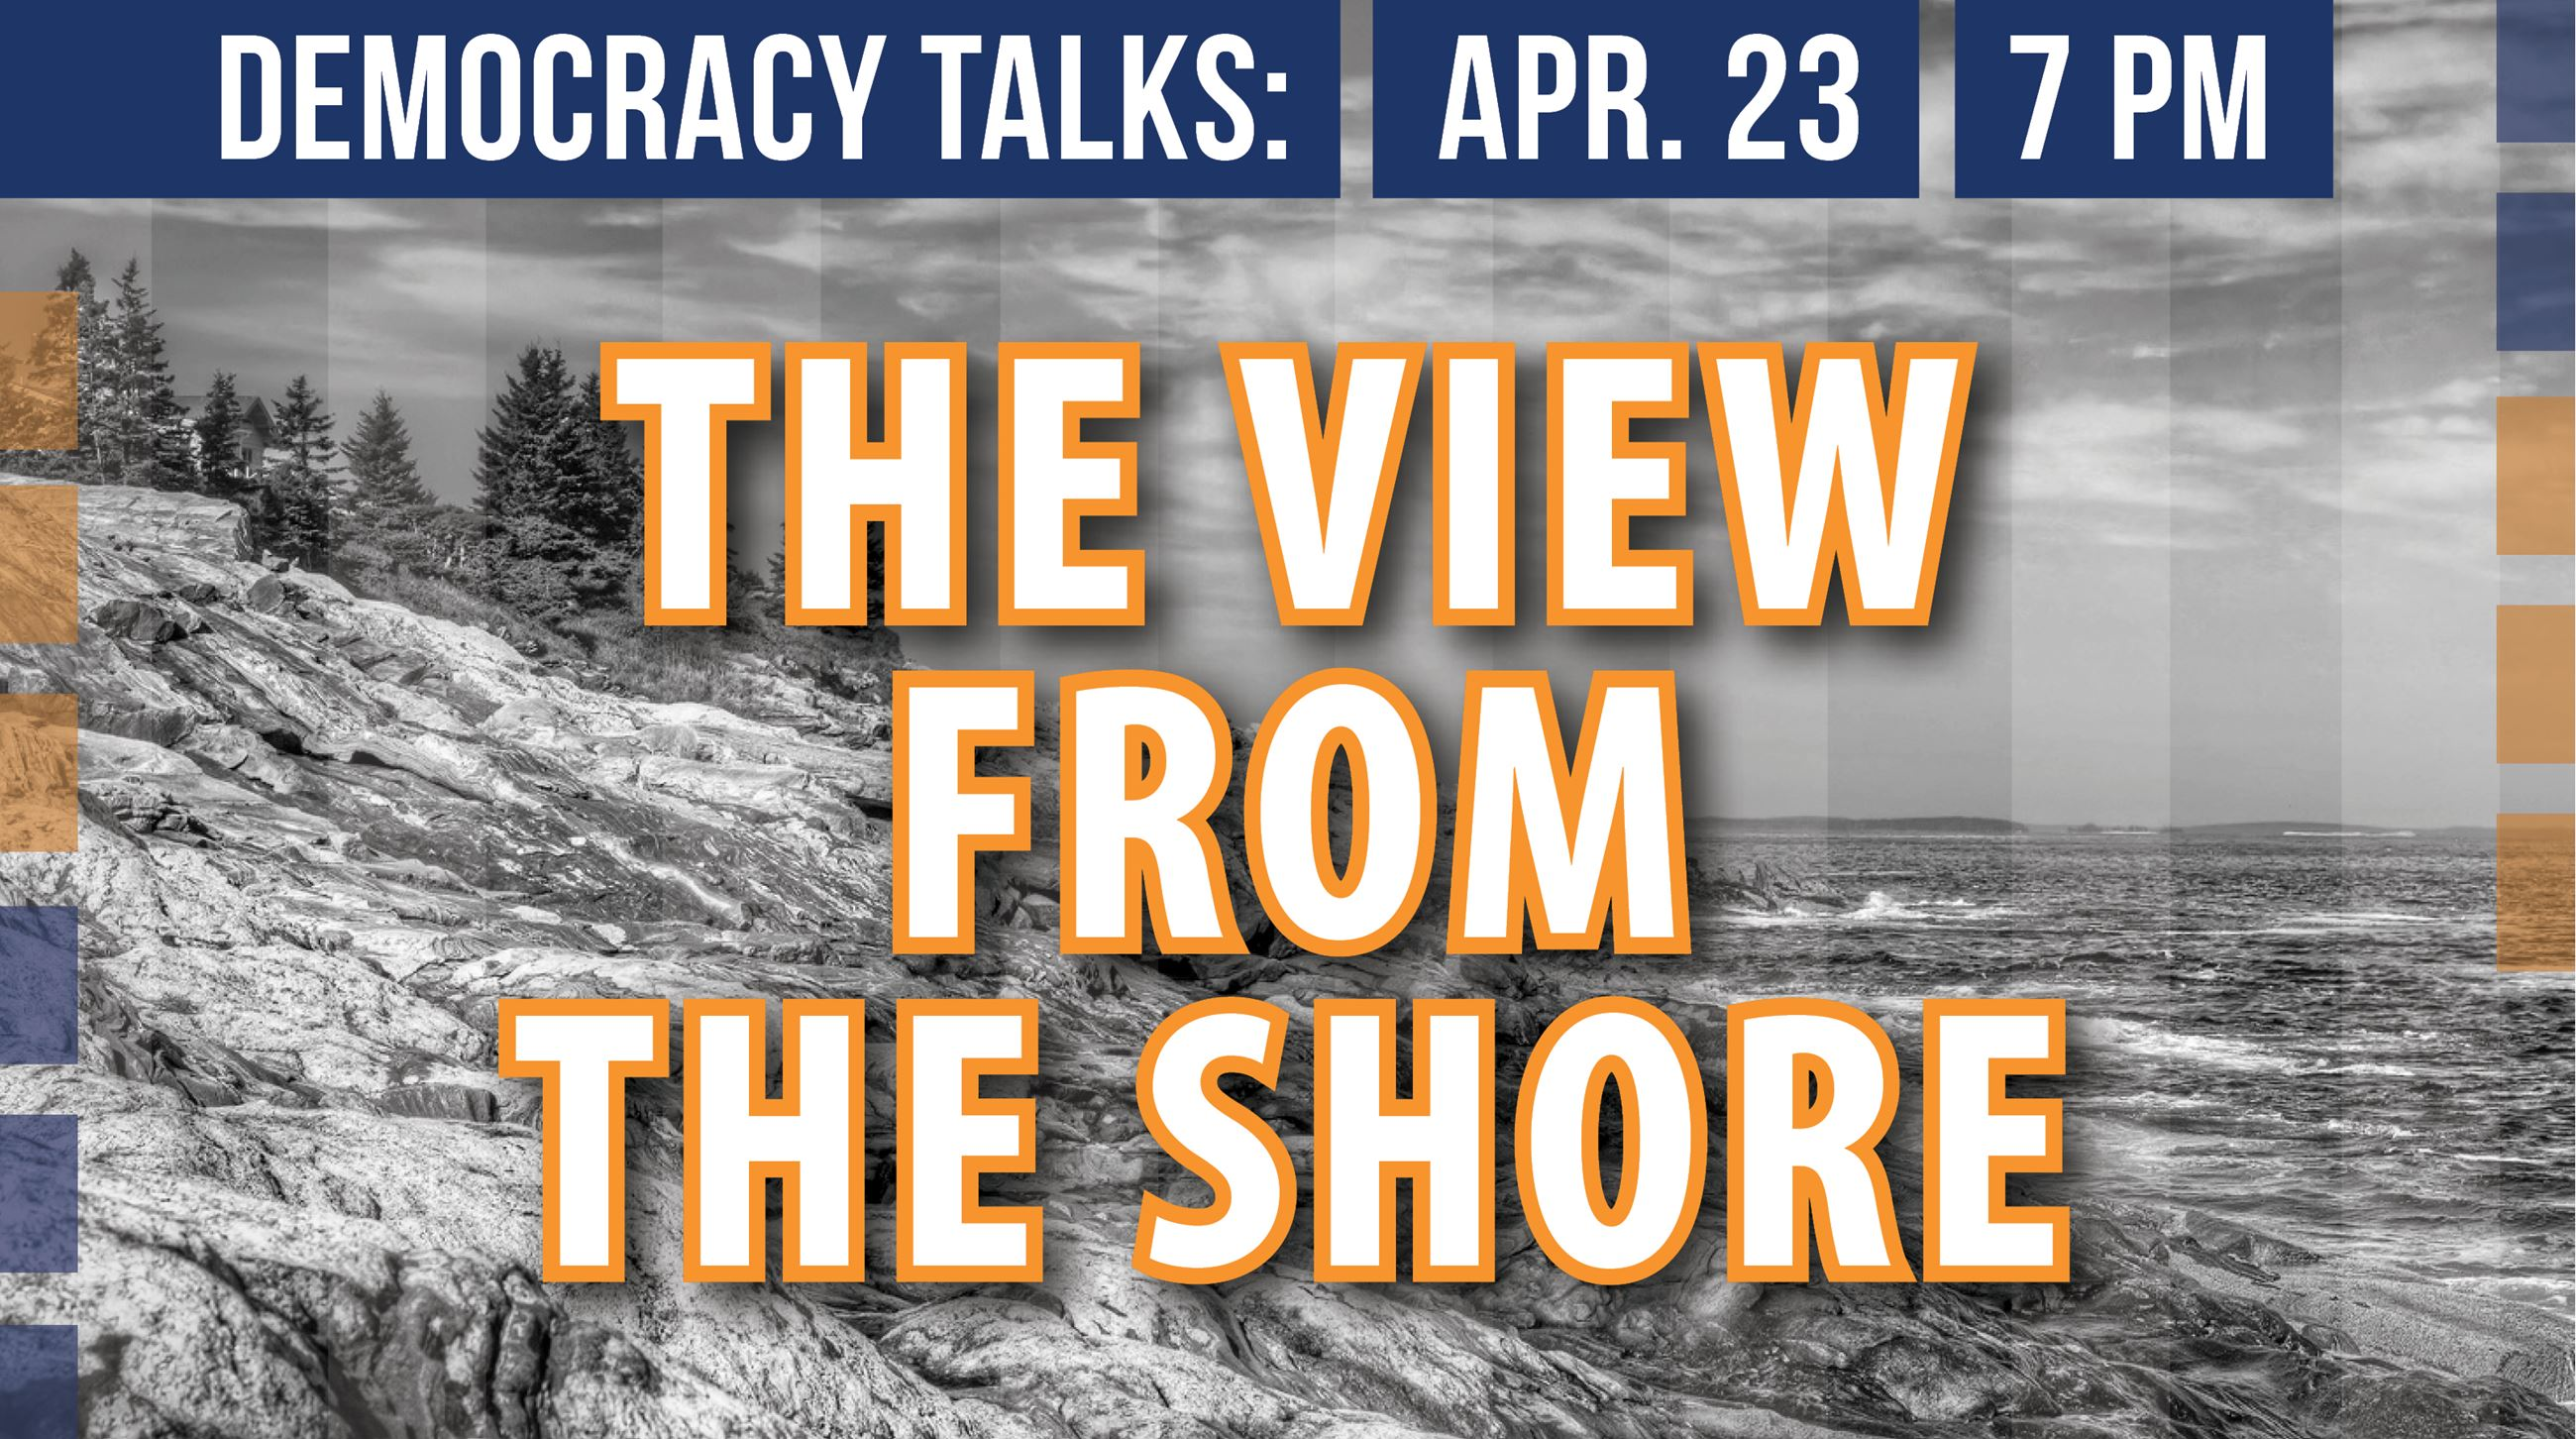 WFPL will host Dr. Mishy Lesser for our next Democracy Talks event on April 23, 2019.